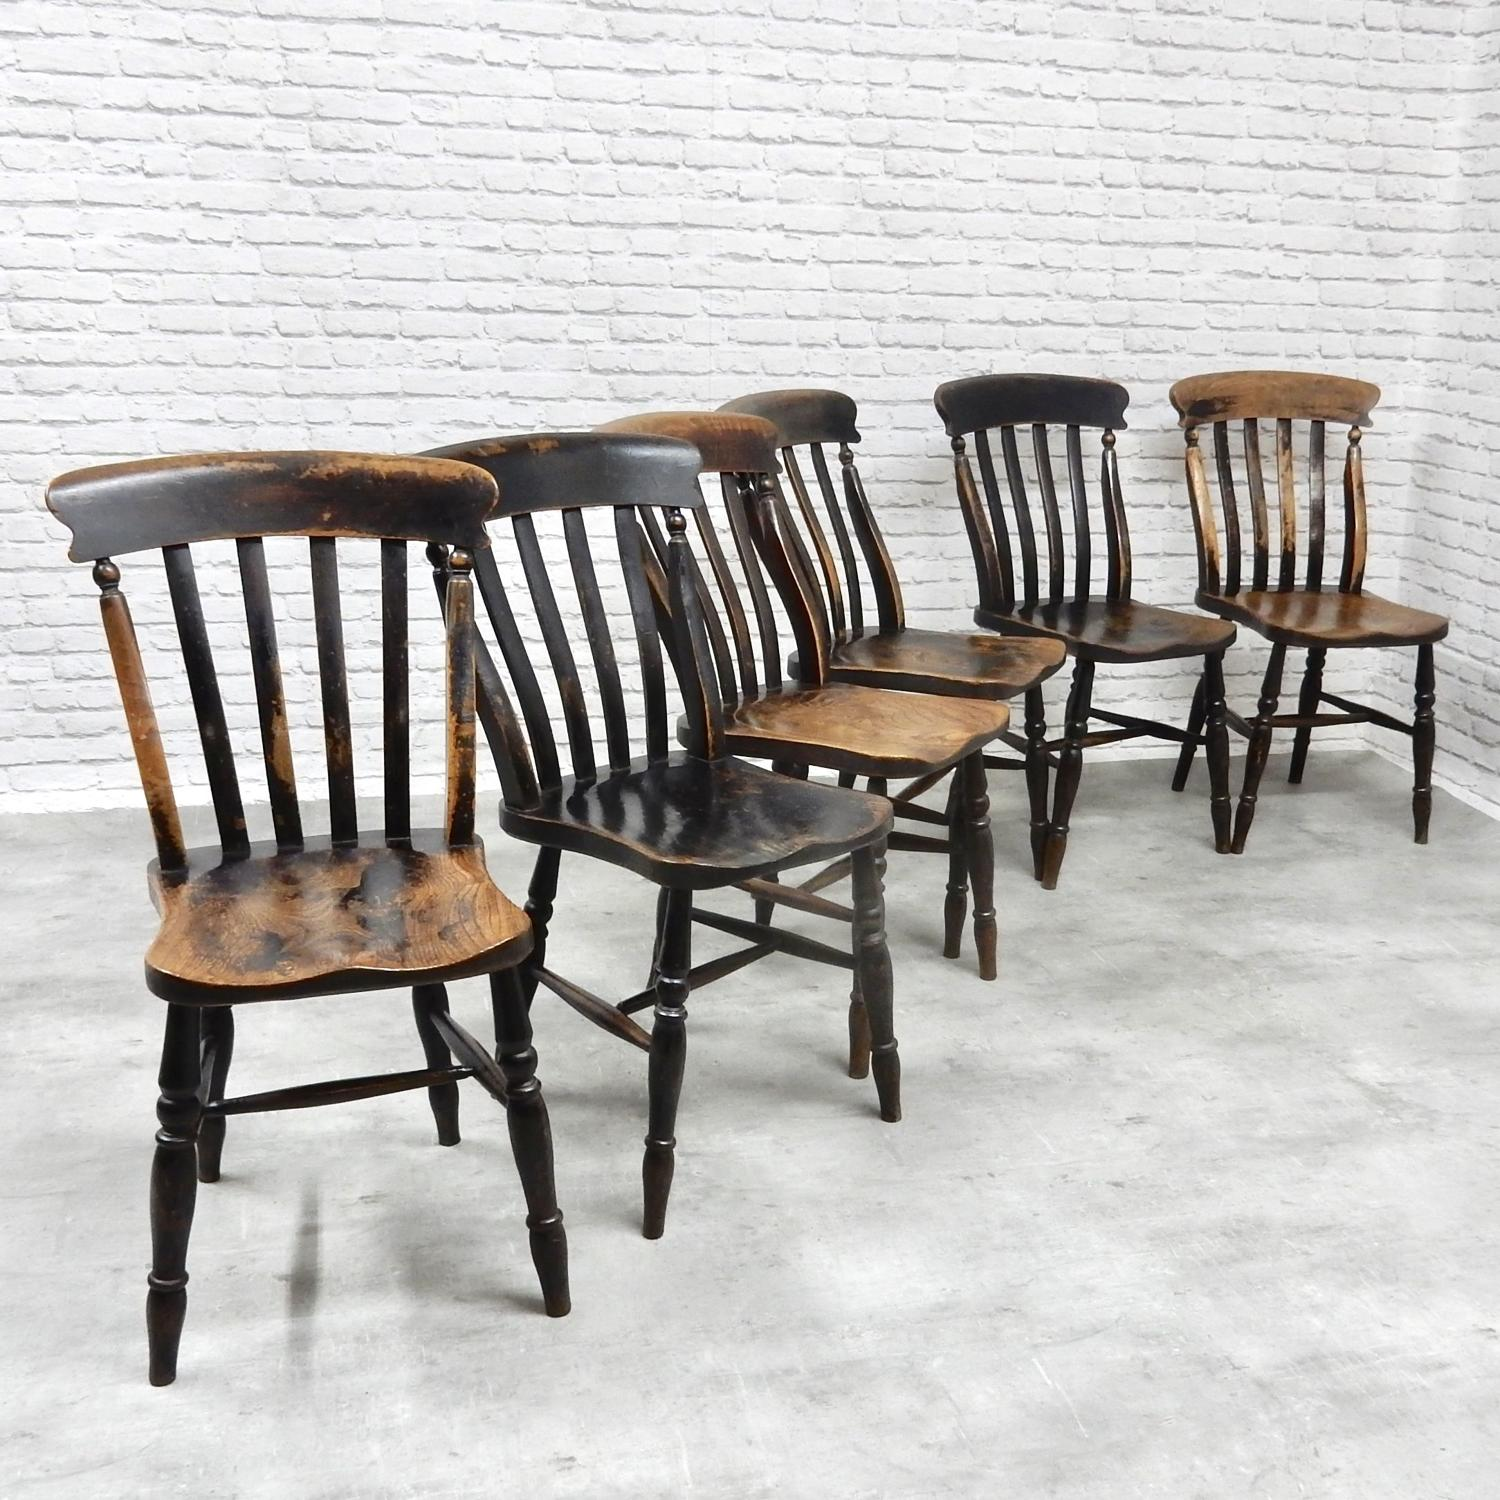 Set 6 Antique Windsor Chairs